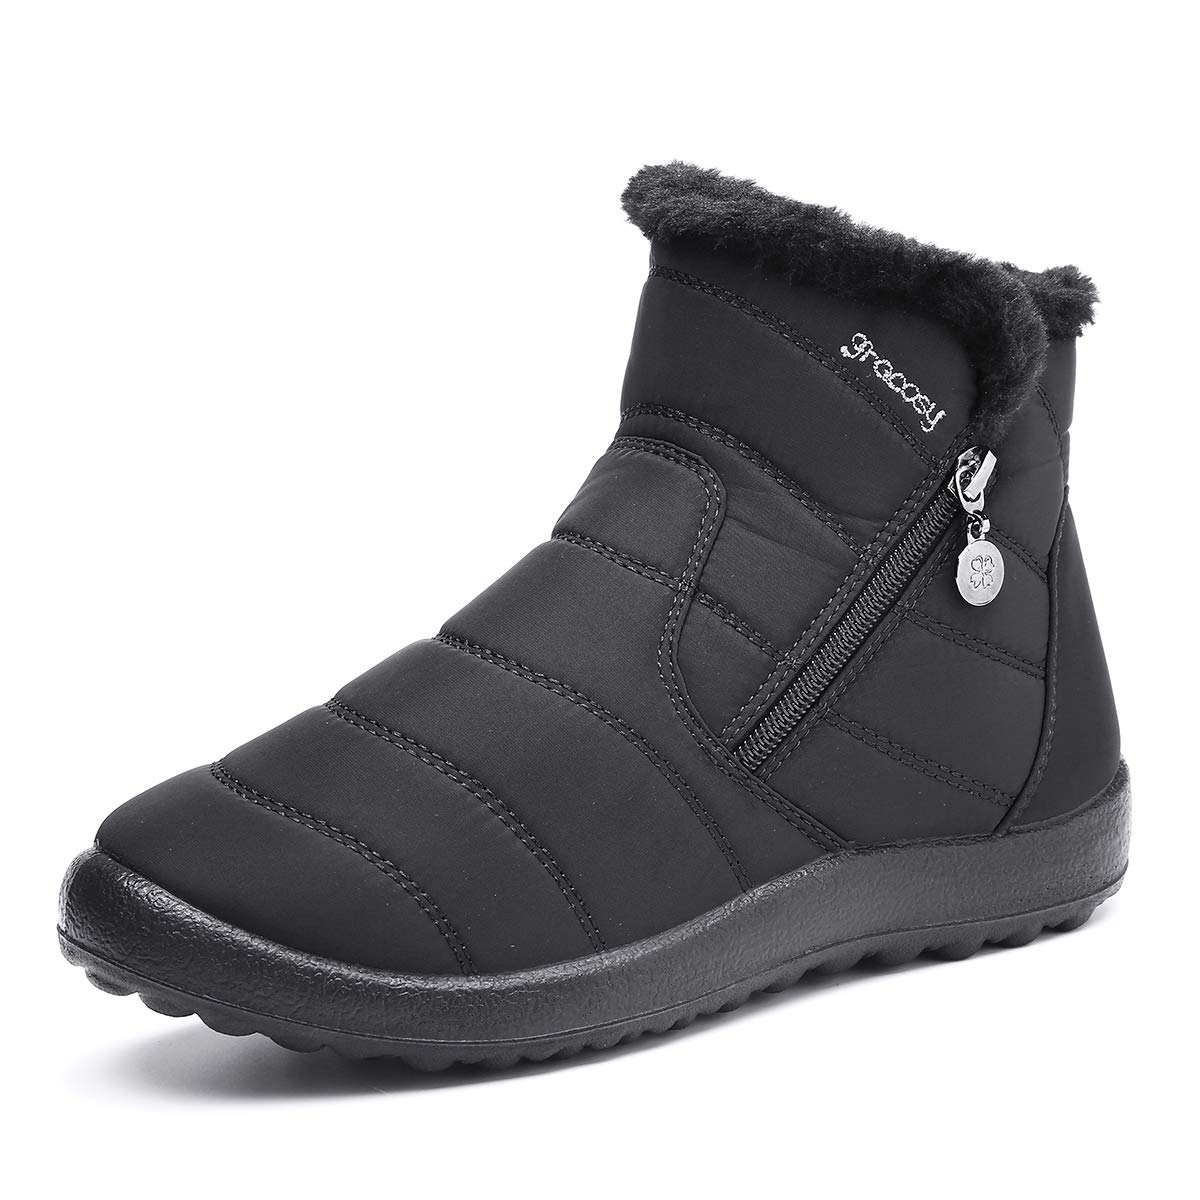 gracosy Warm Snow Boots Outdoor Fur Lining Winter Shoes Anti-Slip Lightweight Ankle Bootie for Women